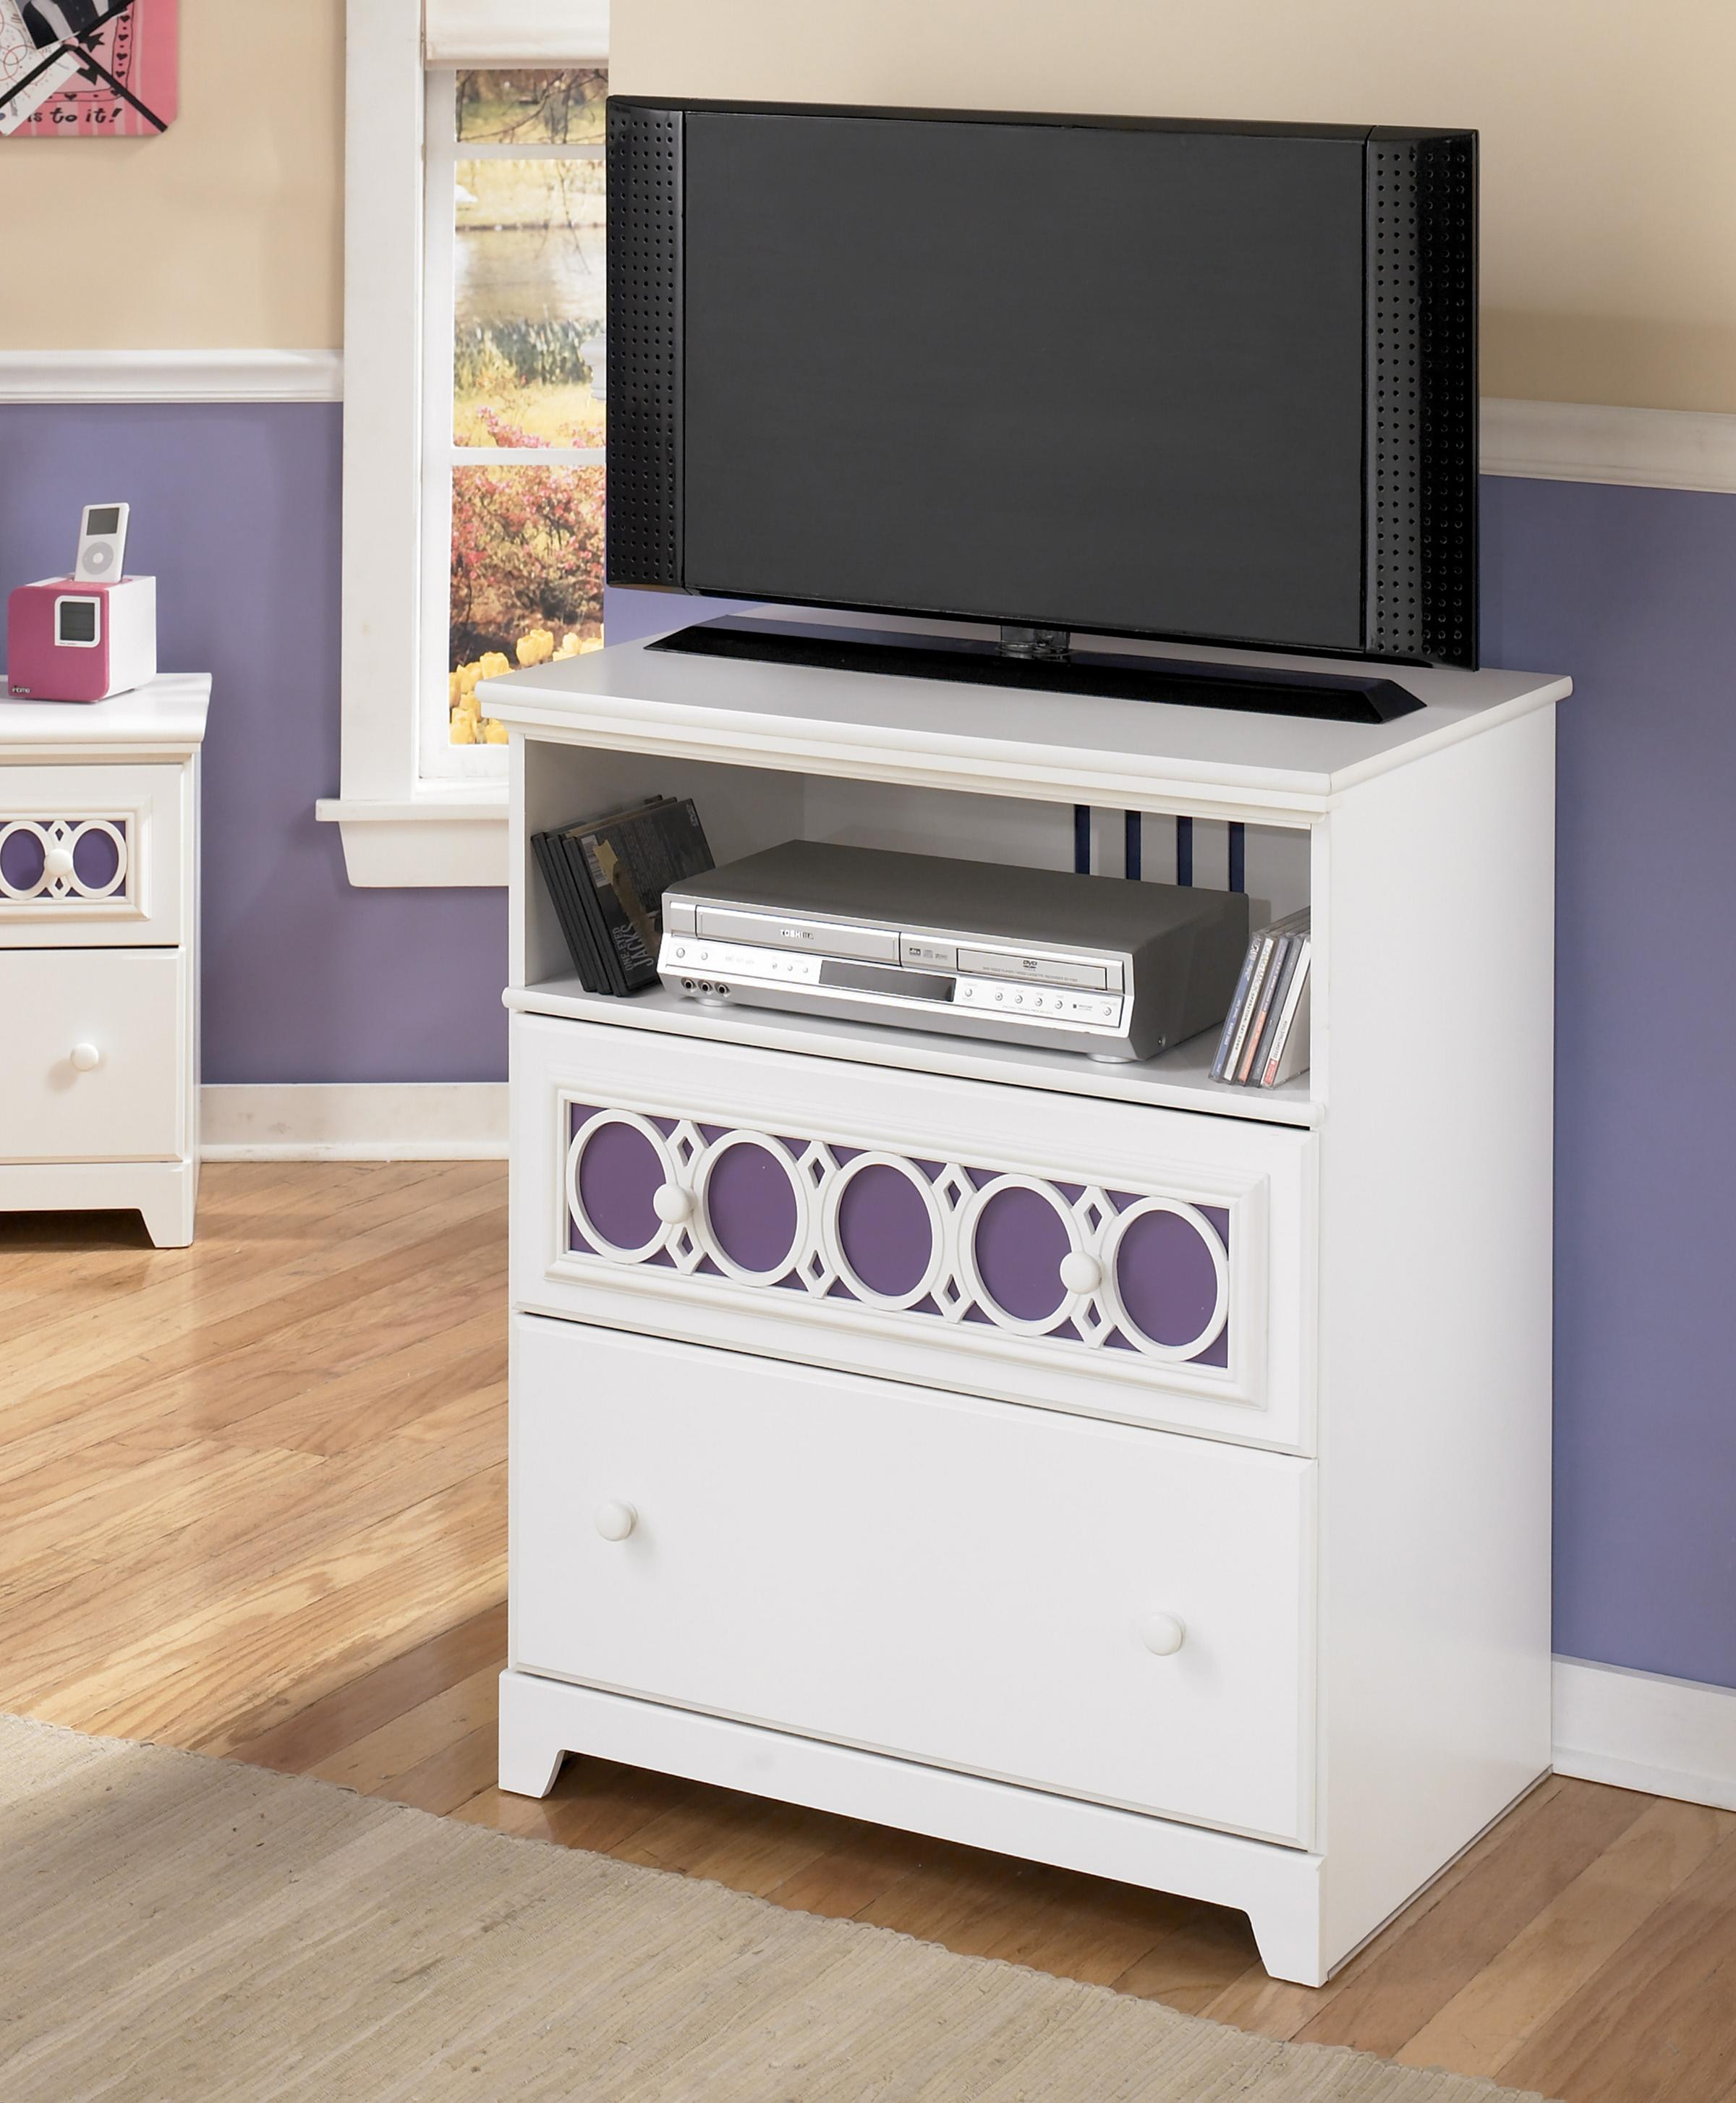 Zayley Media Chest by Signature Design at Fisher Home Furnishings